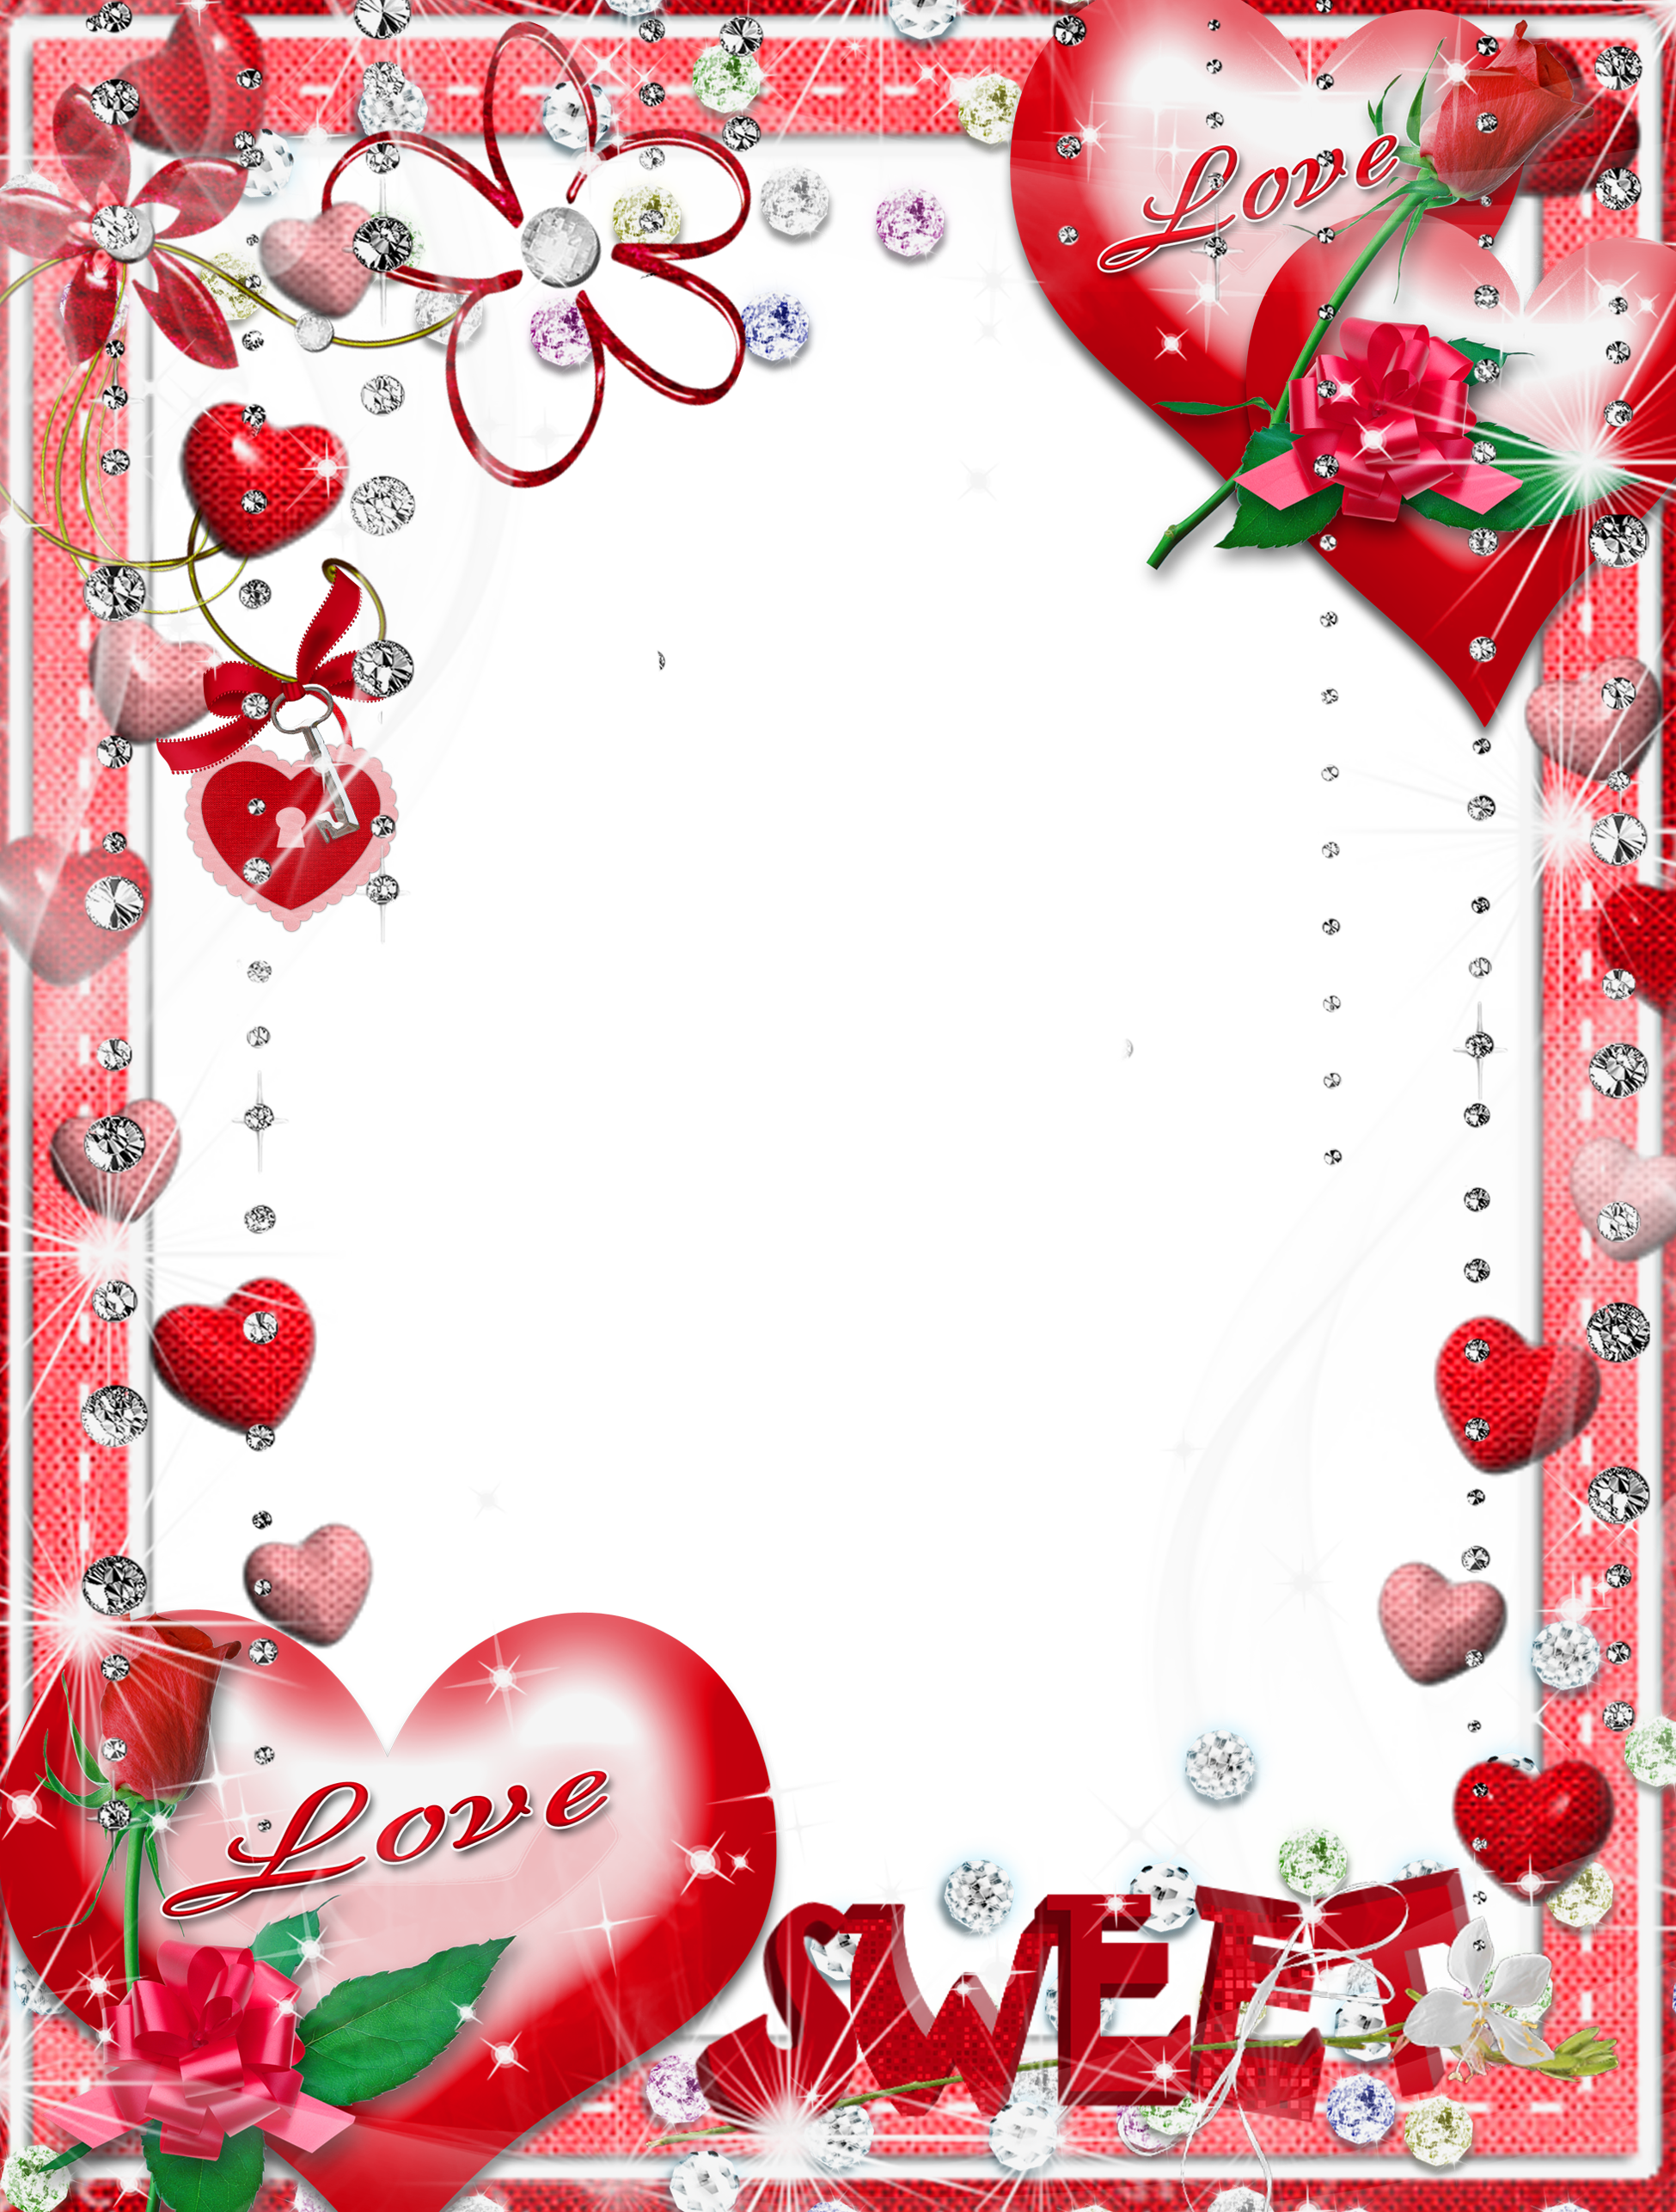 Sweet love clipart vector royalty free stock Sweet Love Transparent PNG Photo Frame | Gallery ... vector royalty free stock